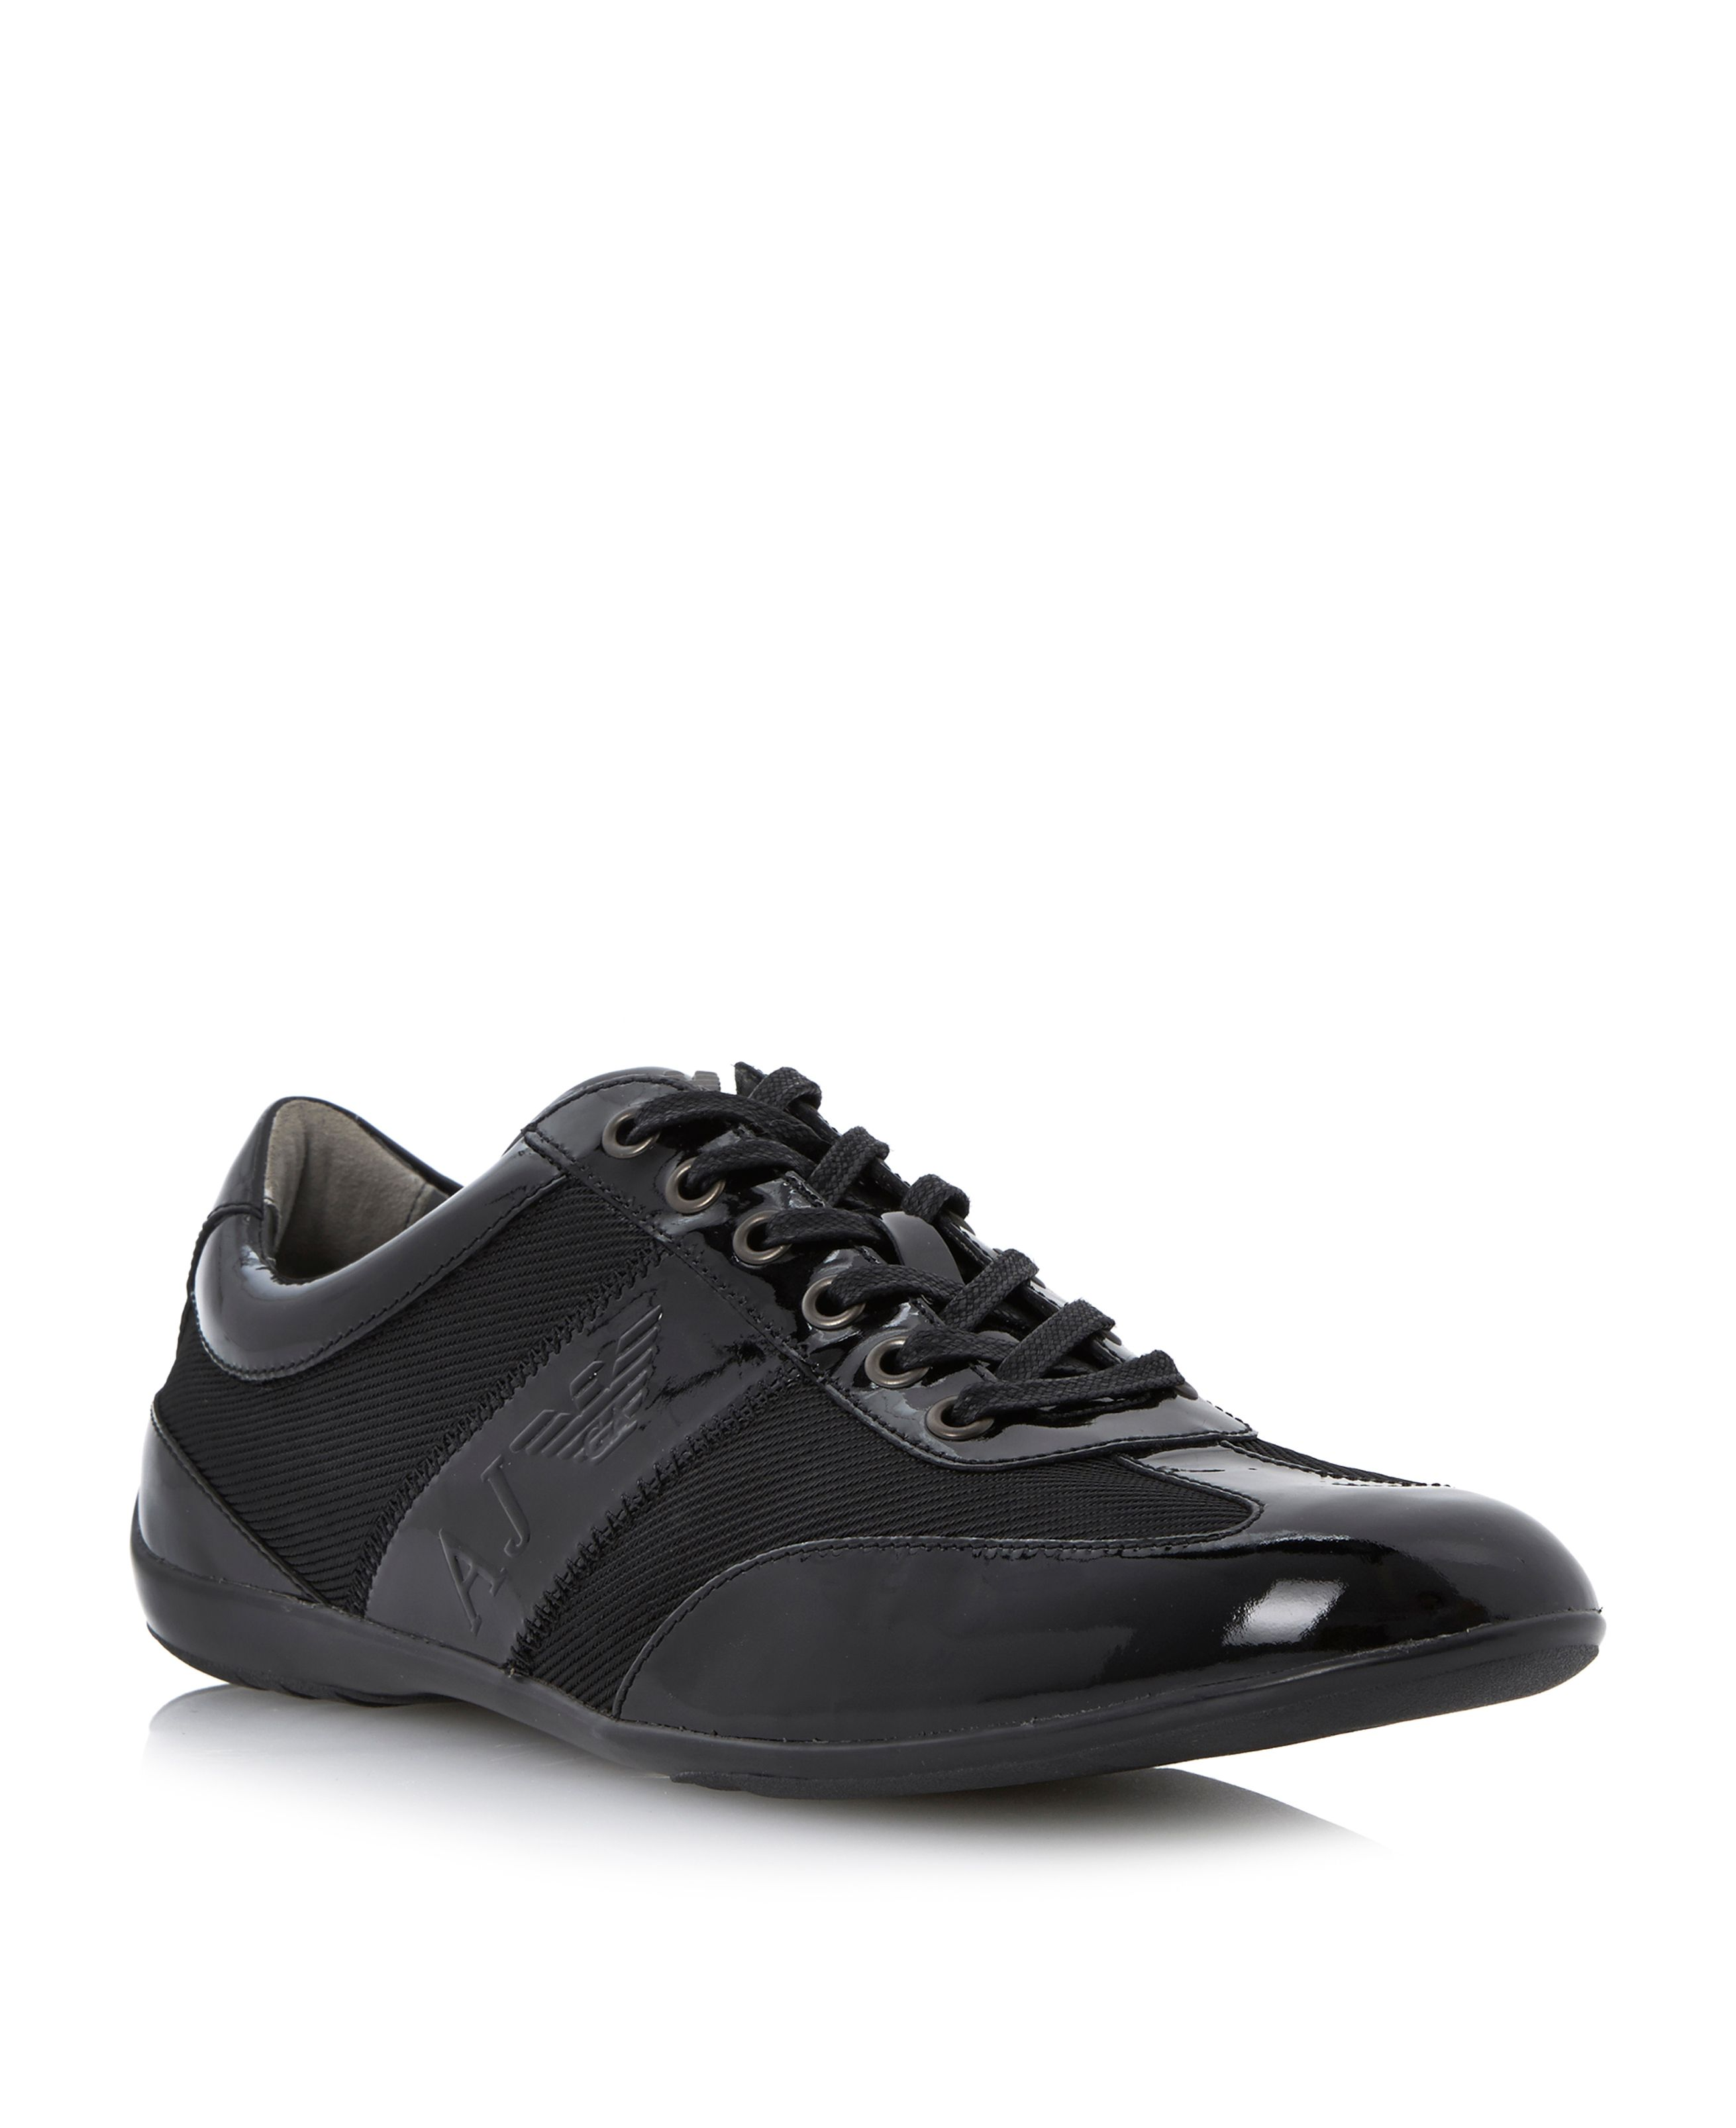 Combo wingtip lace up trainers